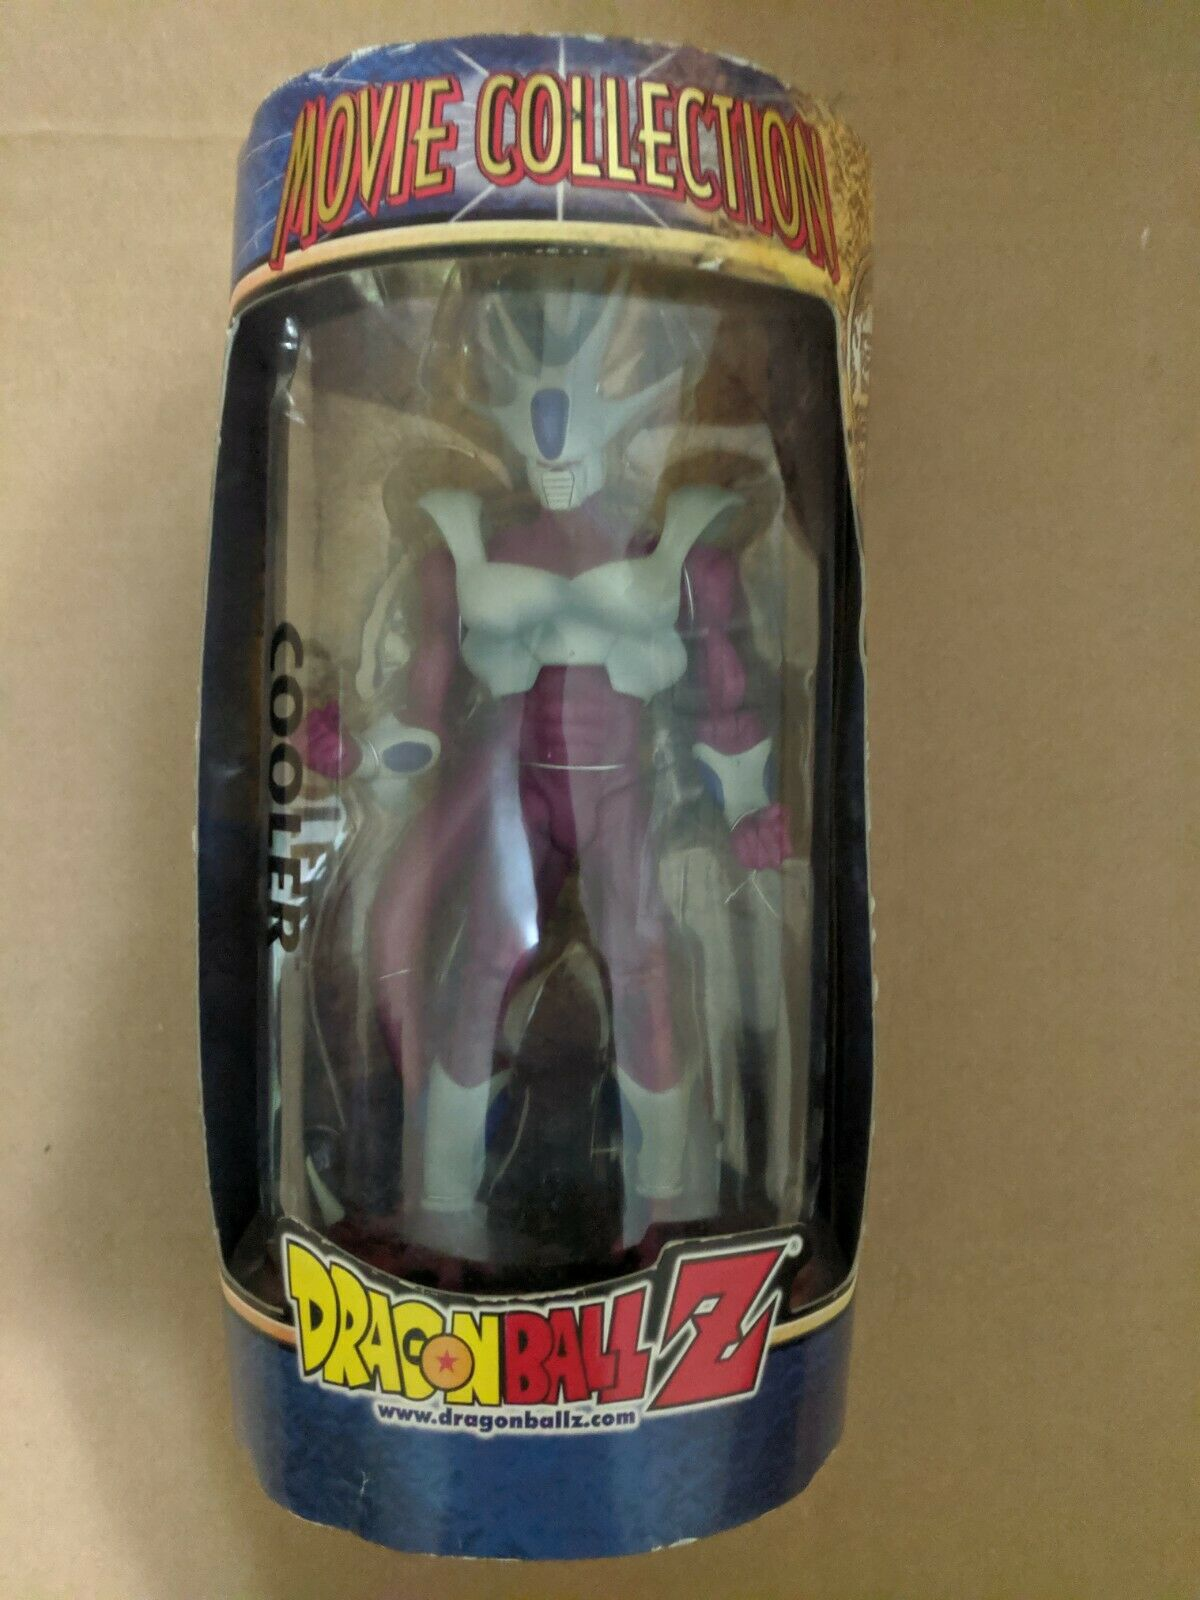 If Labs 2001 Dragon Ball Z Movie Collection Cooler